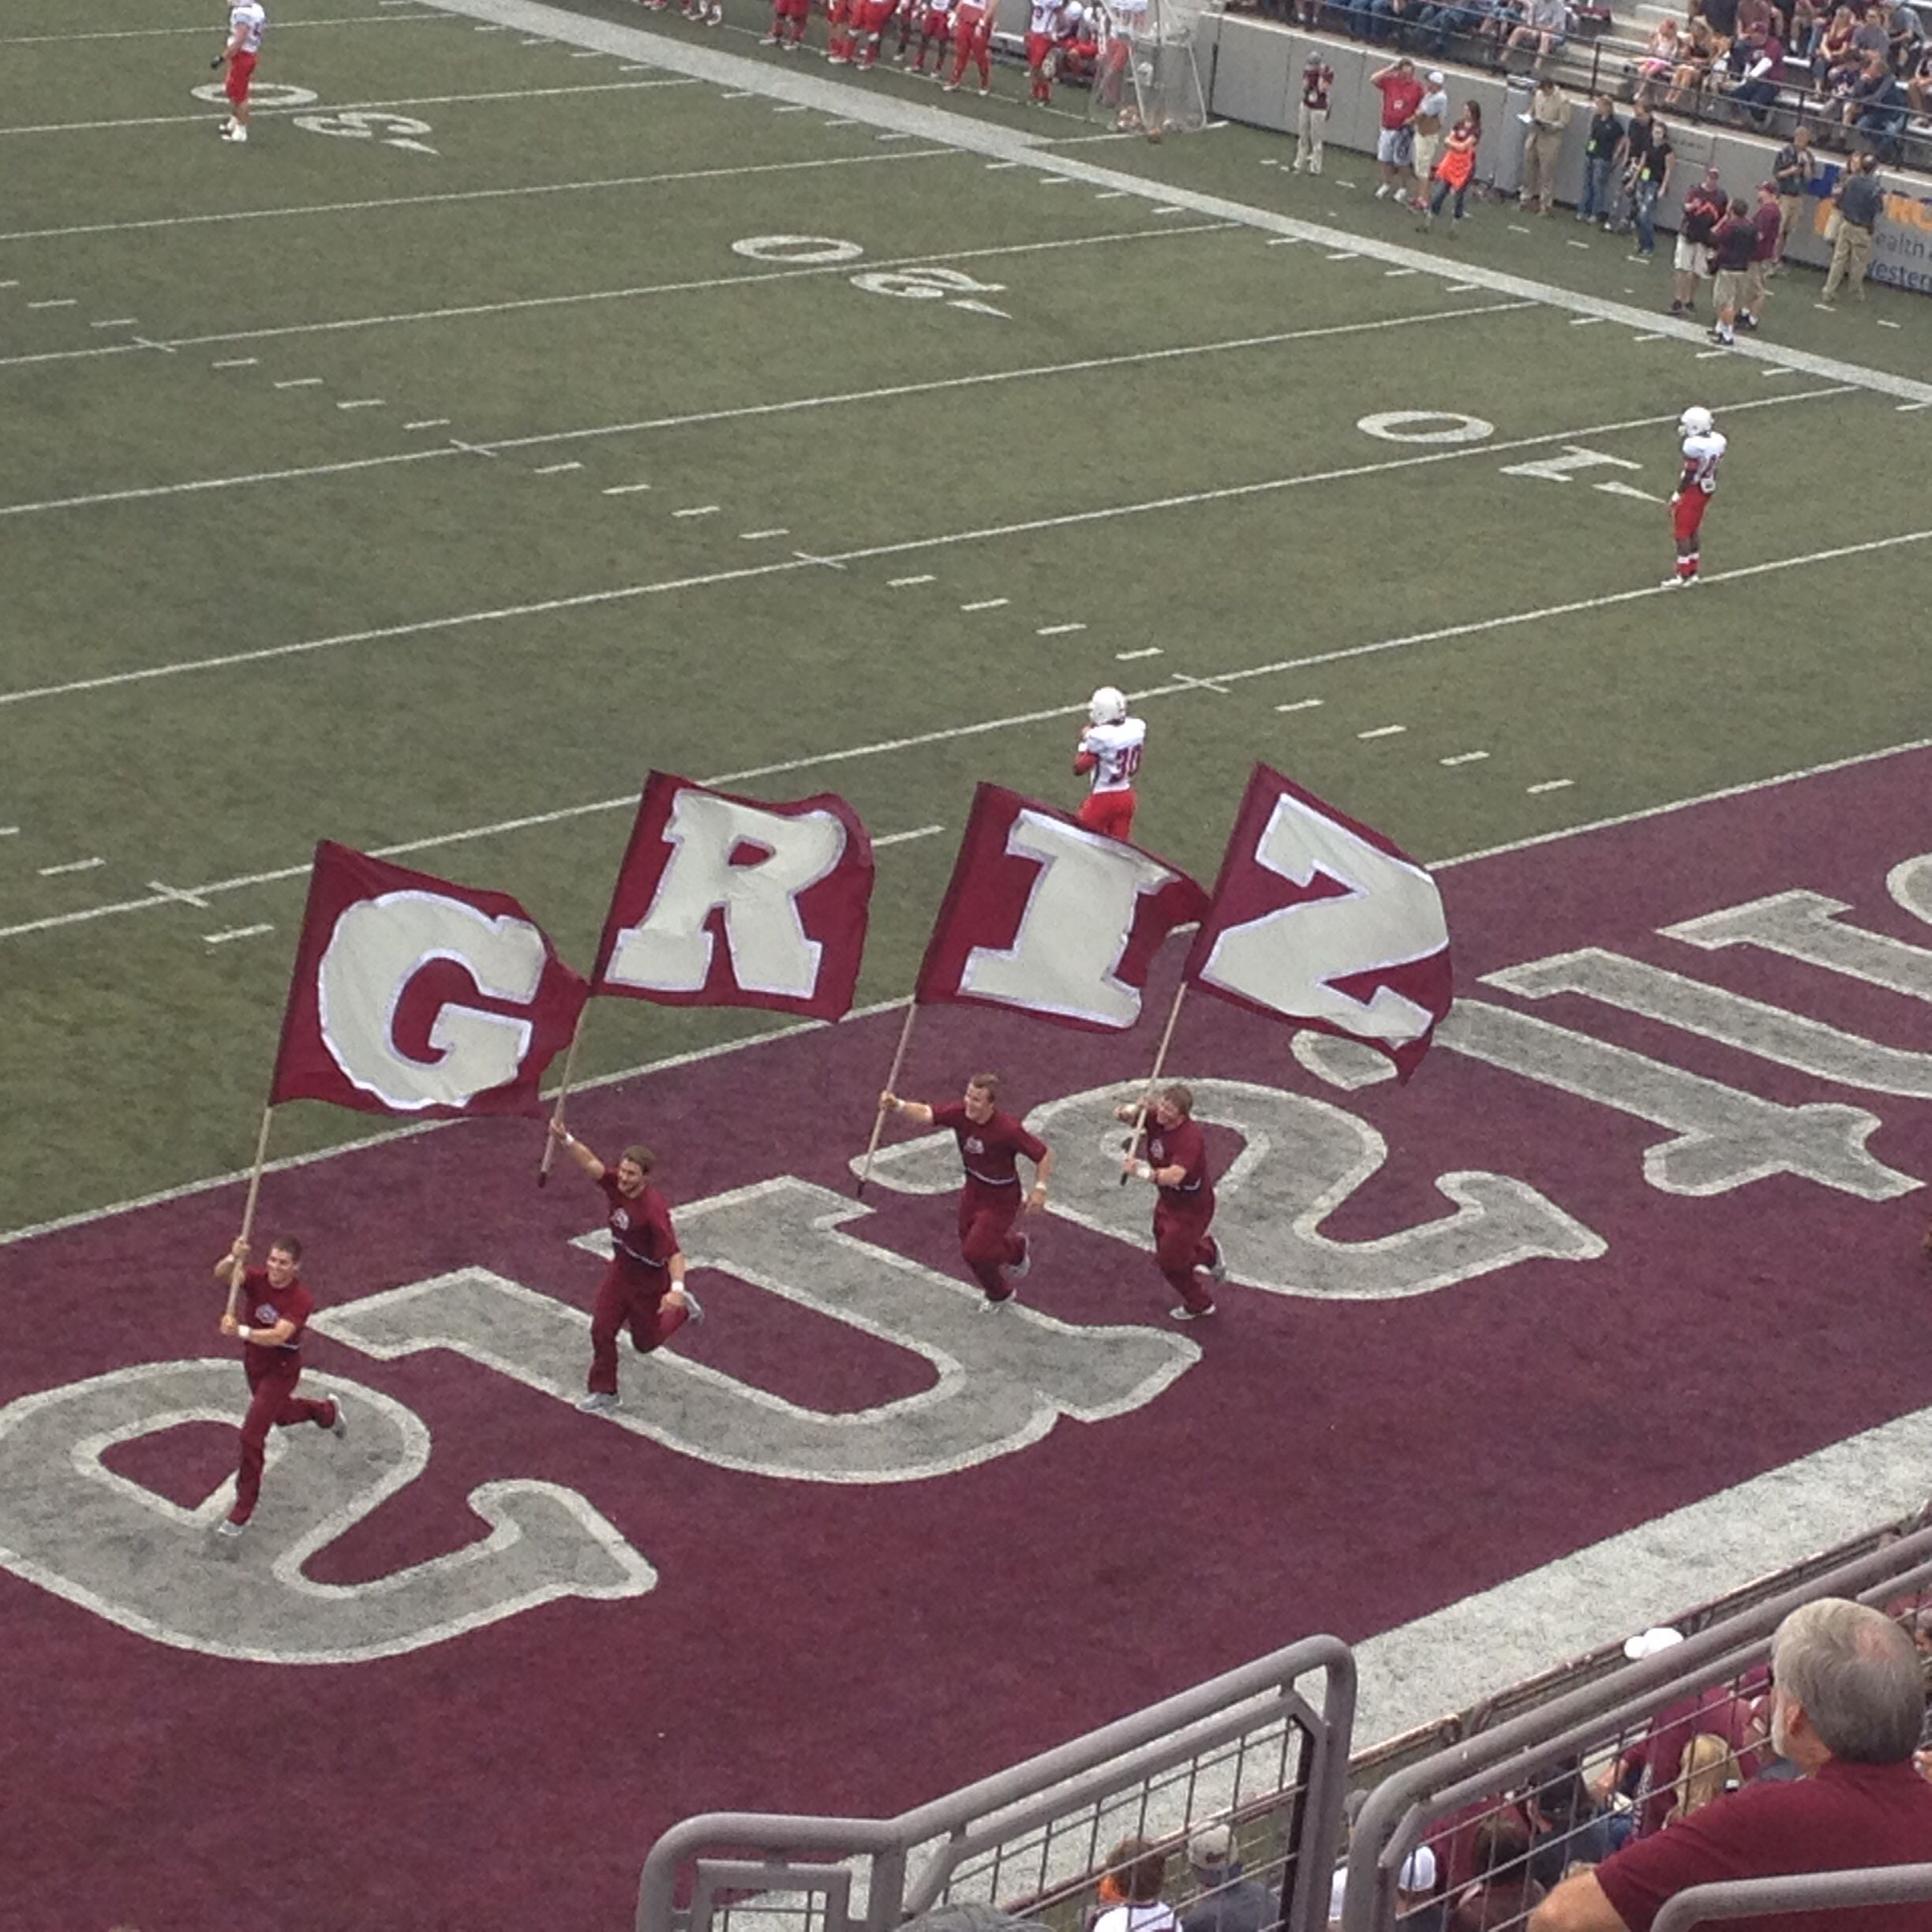 Montana Grizzly cheerleaders run through the endzone with the GRIZ flags. Go Griz!